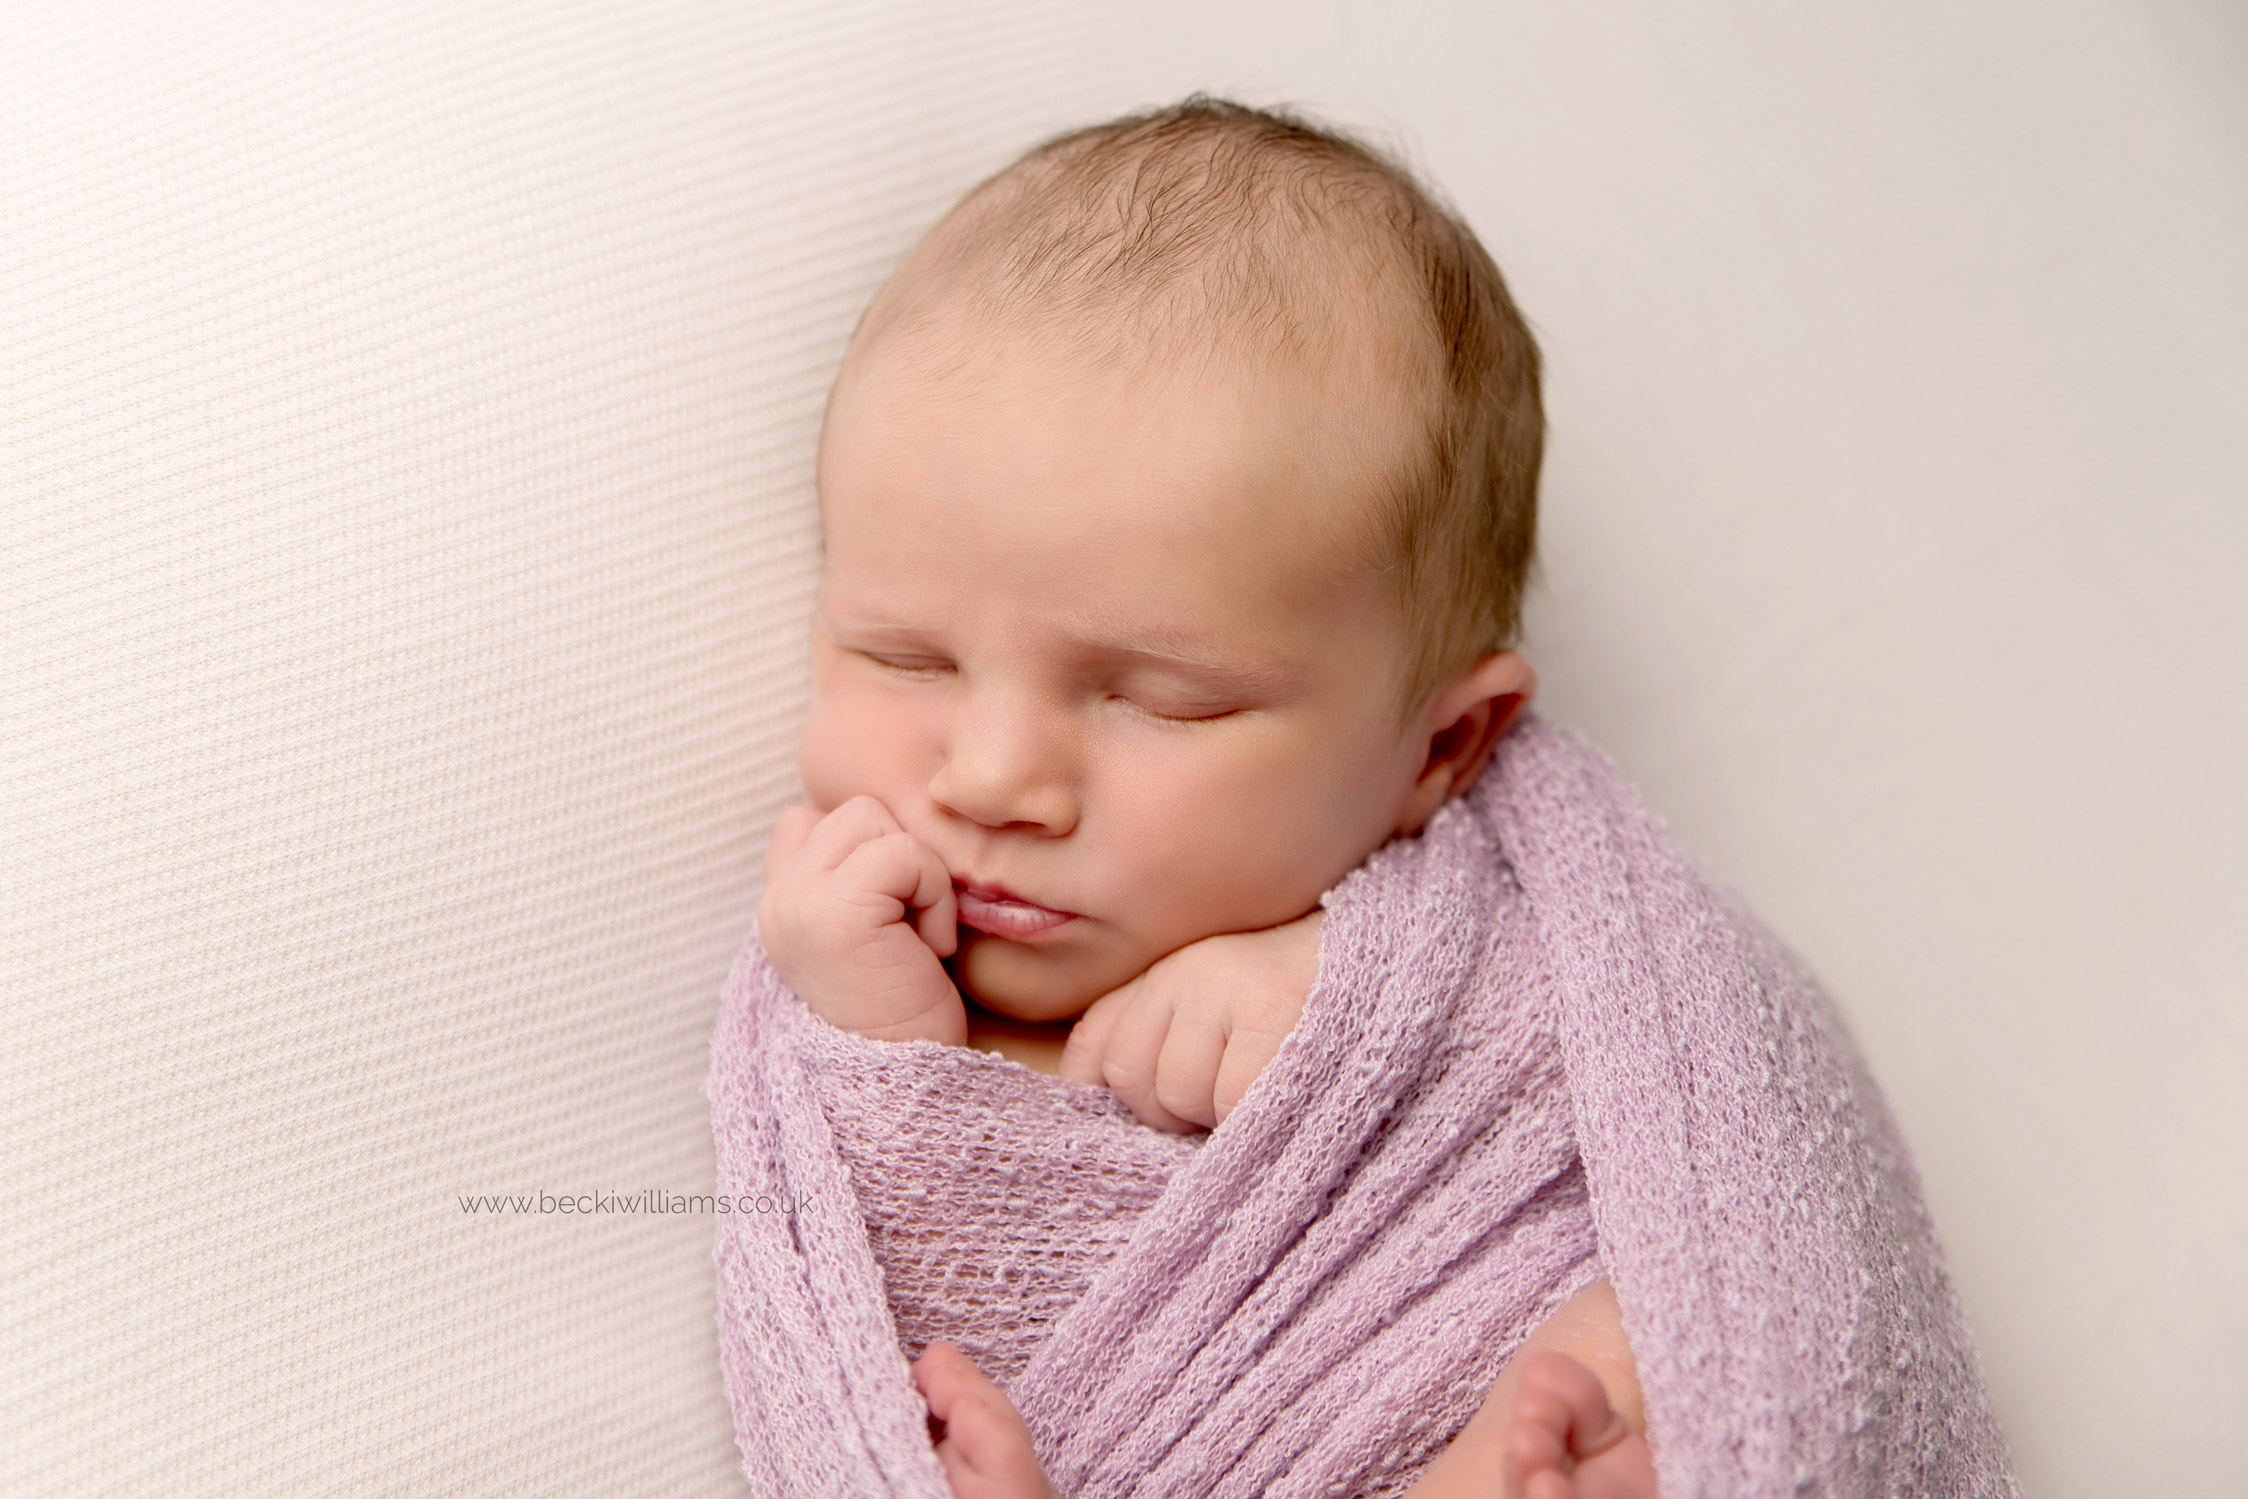 newborn baby girl, asleep, wrapped in a pink wrap for her newborn photo shoot in hemel hempstead